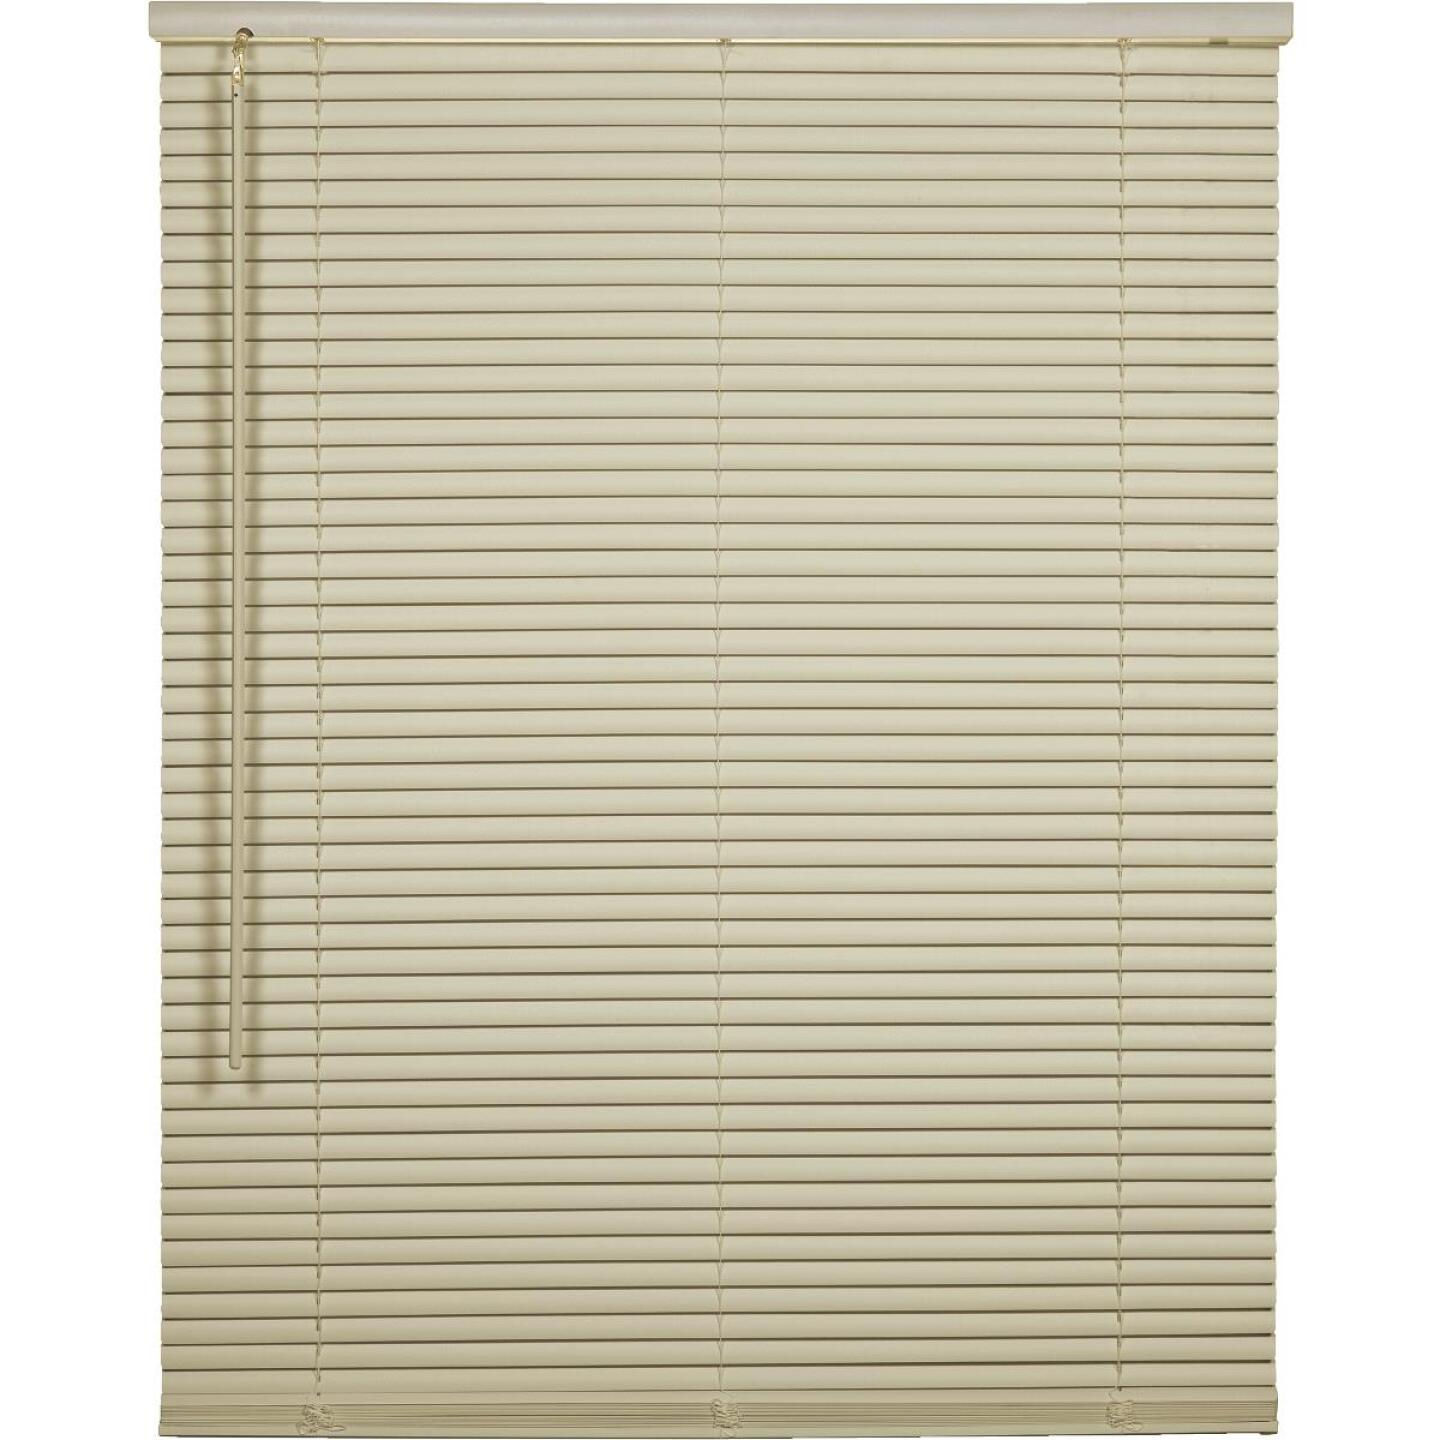 Home Impressions 58 In. x 64 In. x 1 In. Vanilla Vinyl Light Filtering Cordless Mini Blind Image 1